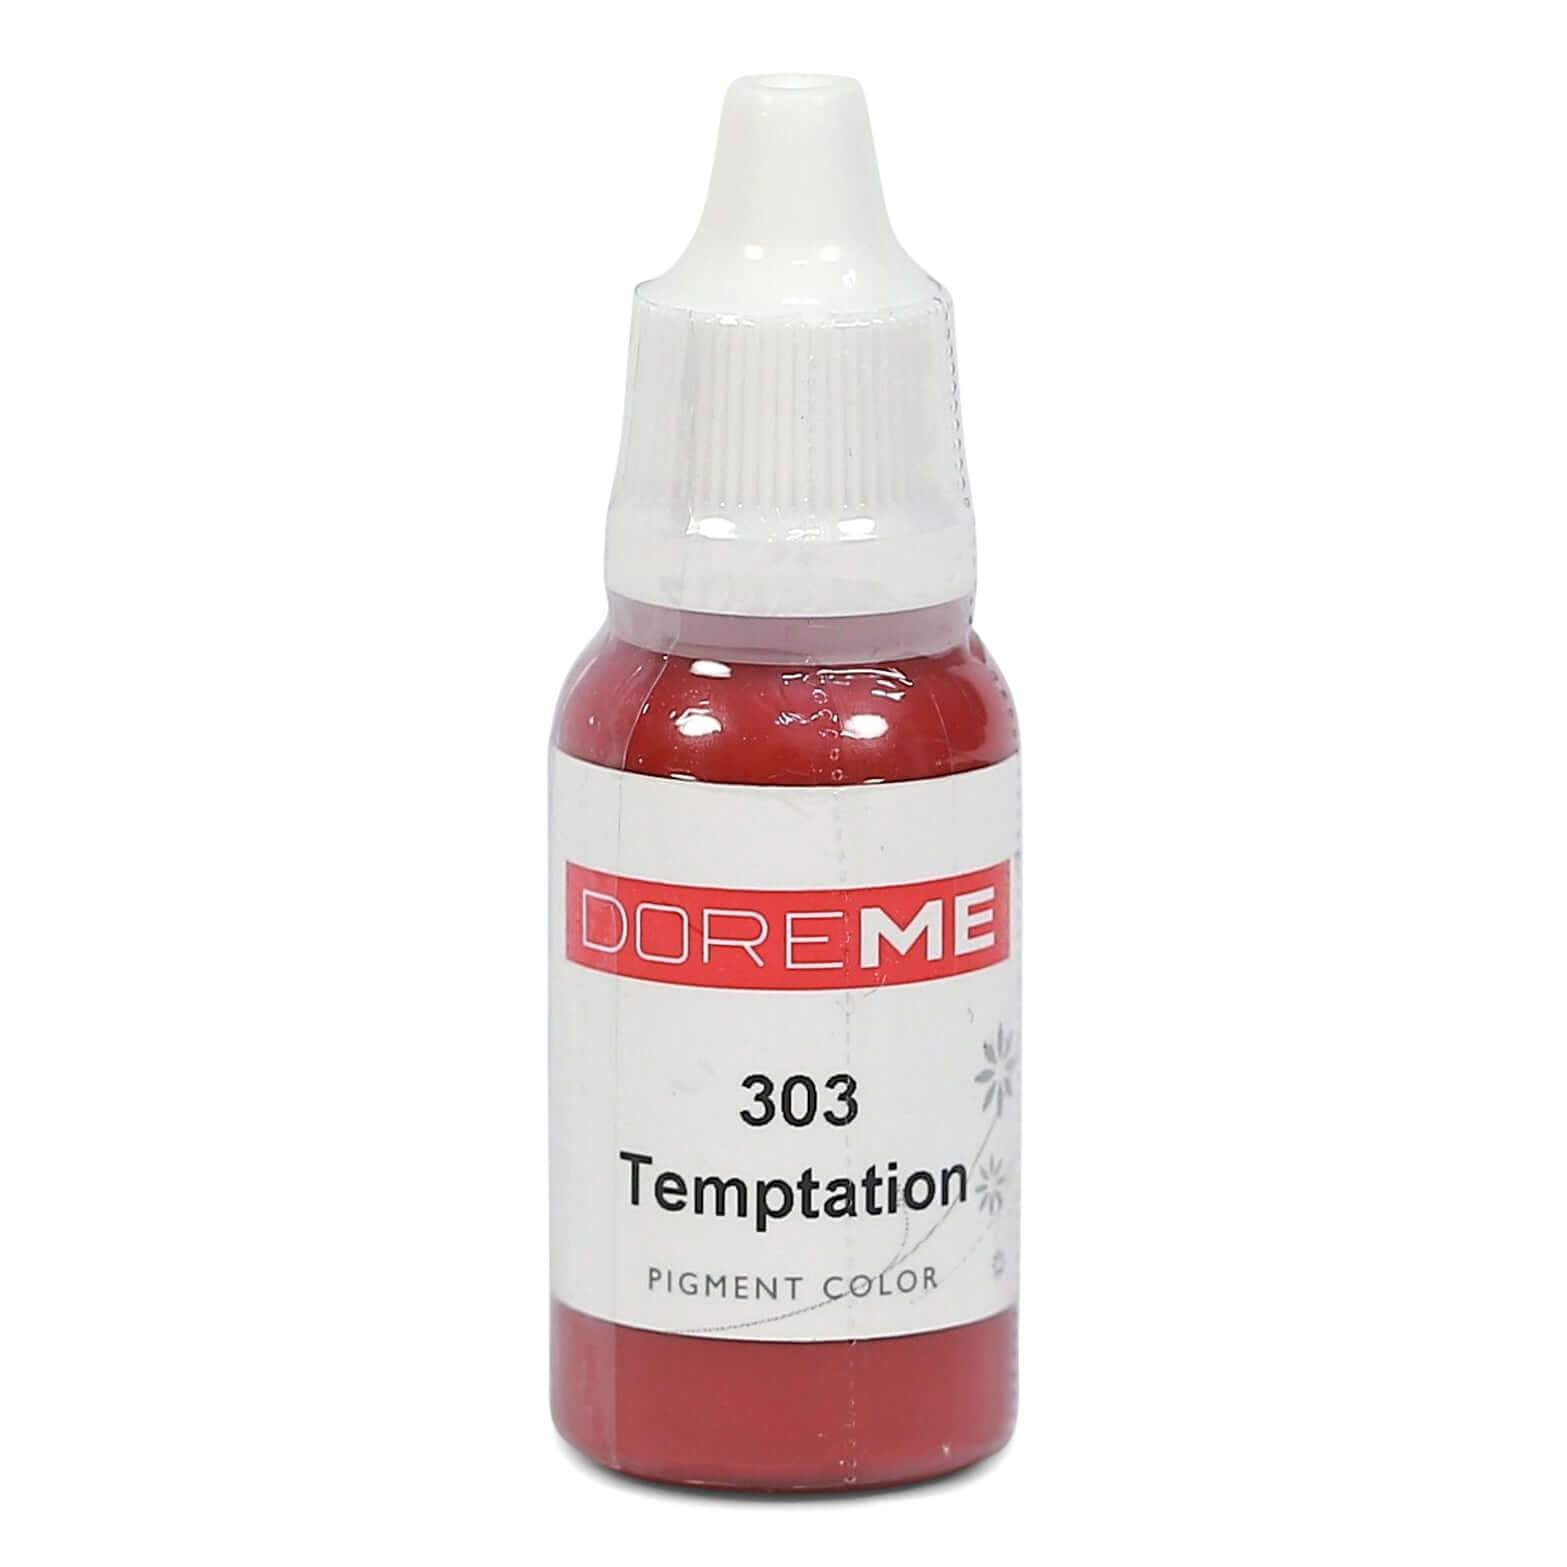 Permanent Makeup pigments Doreme Micropigmentation Eyebrow, Eyeliner, Lip Colours 303 Temptation (n) - Beautiful Ink UK trade and wholesale supplier